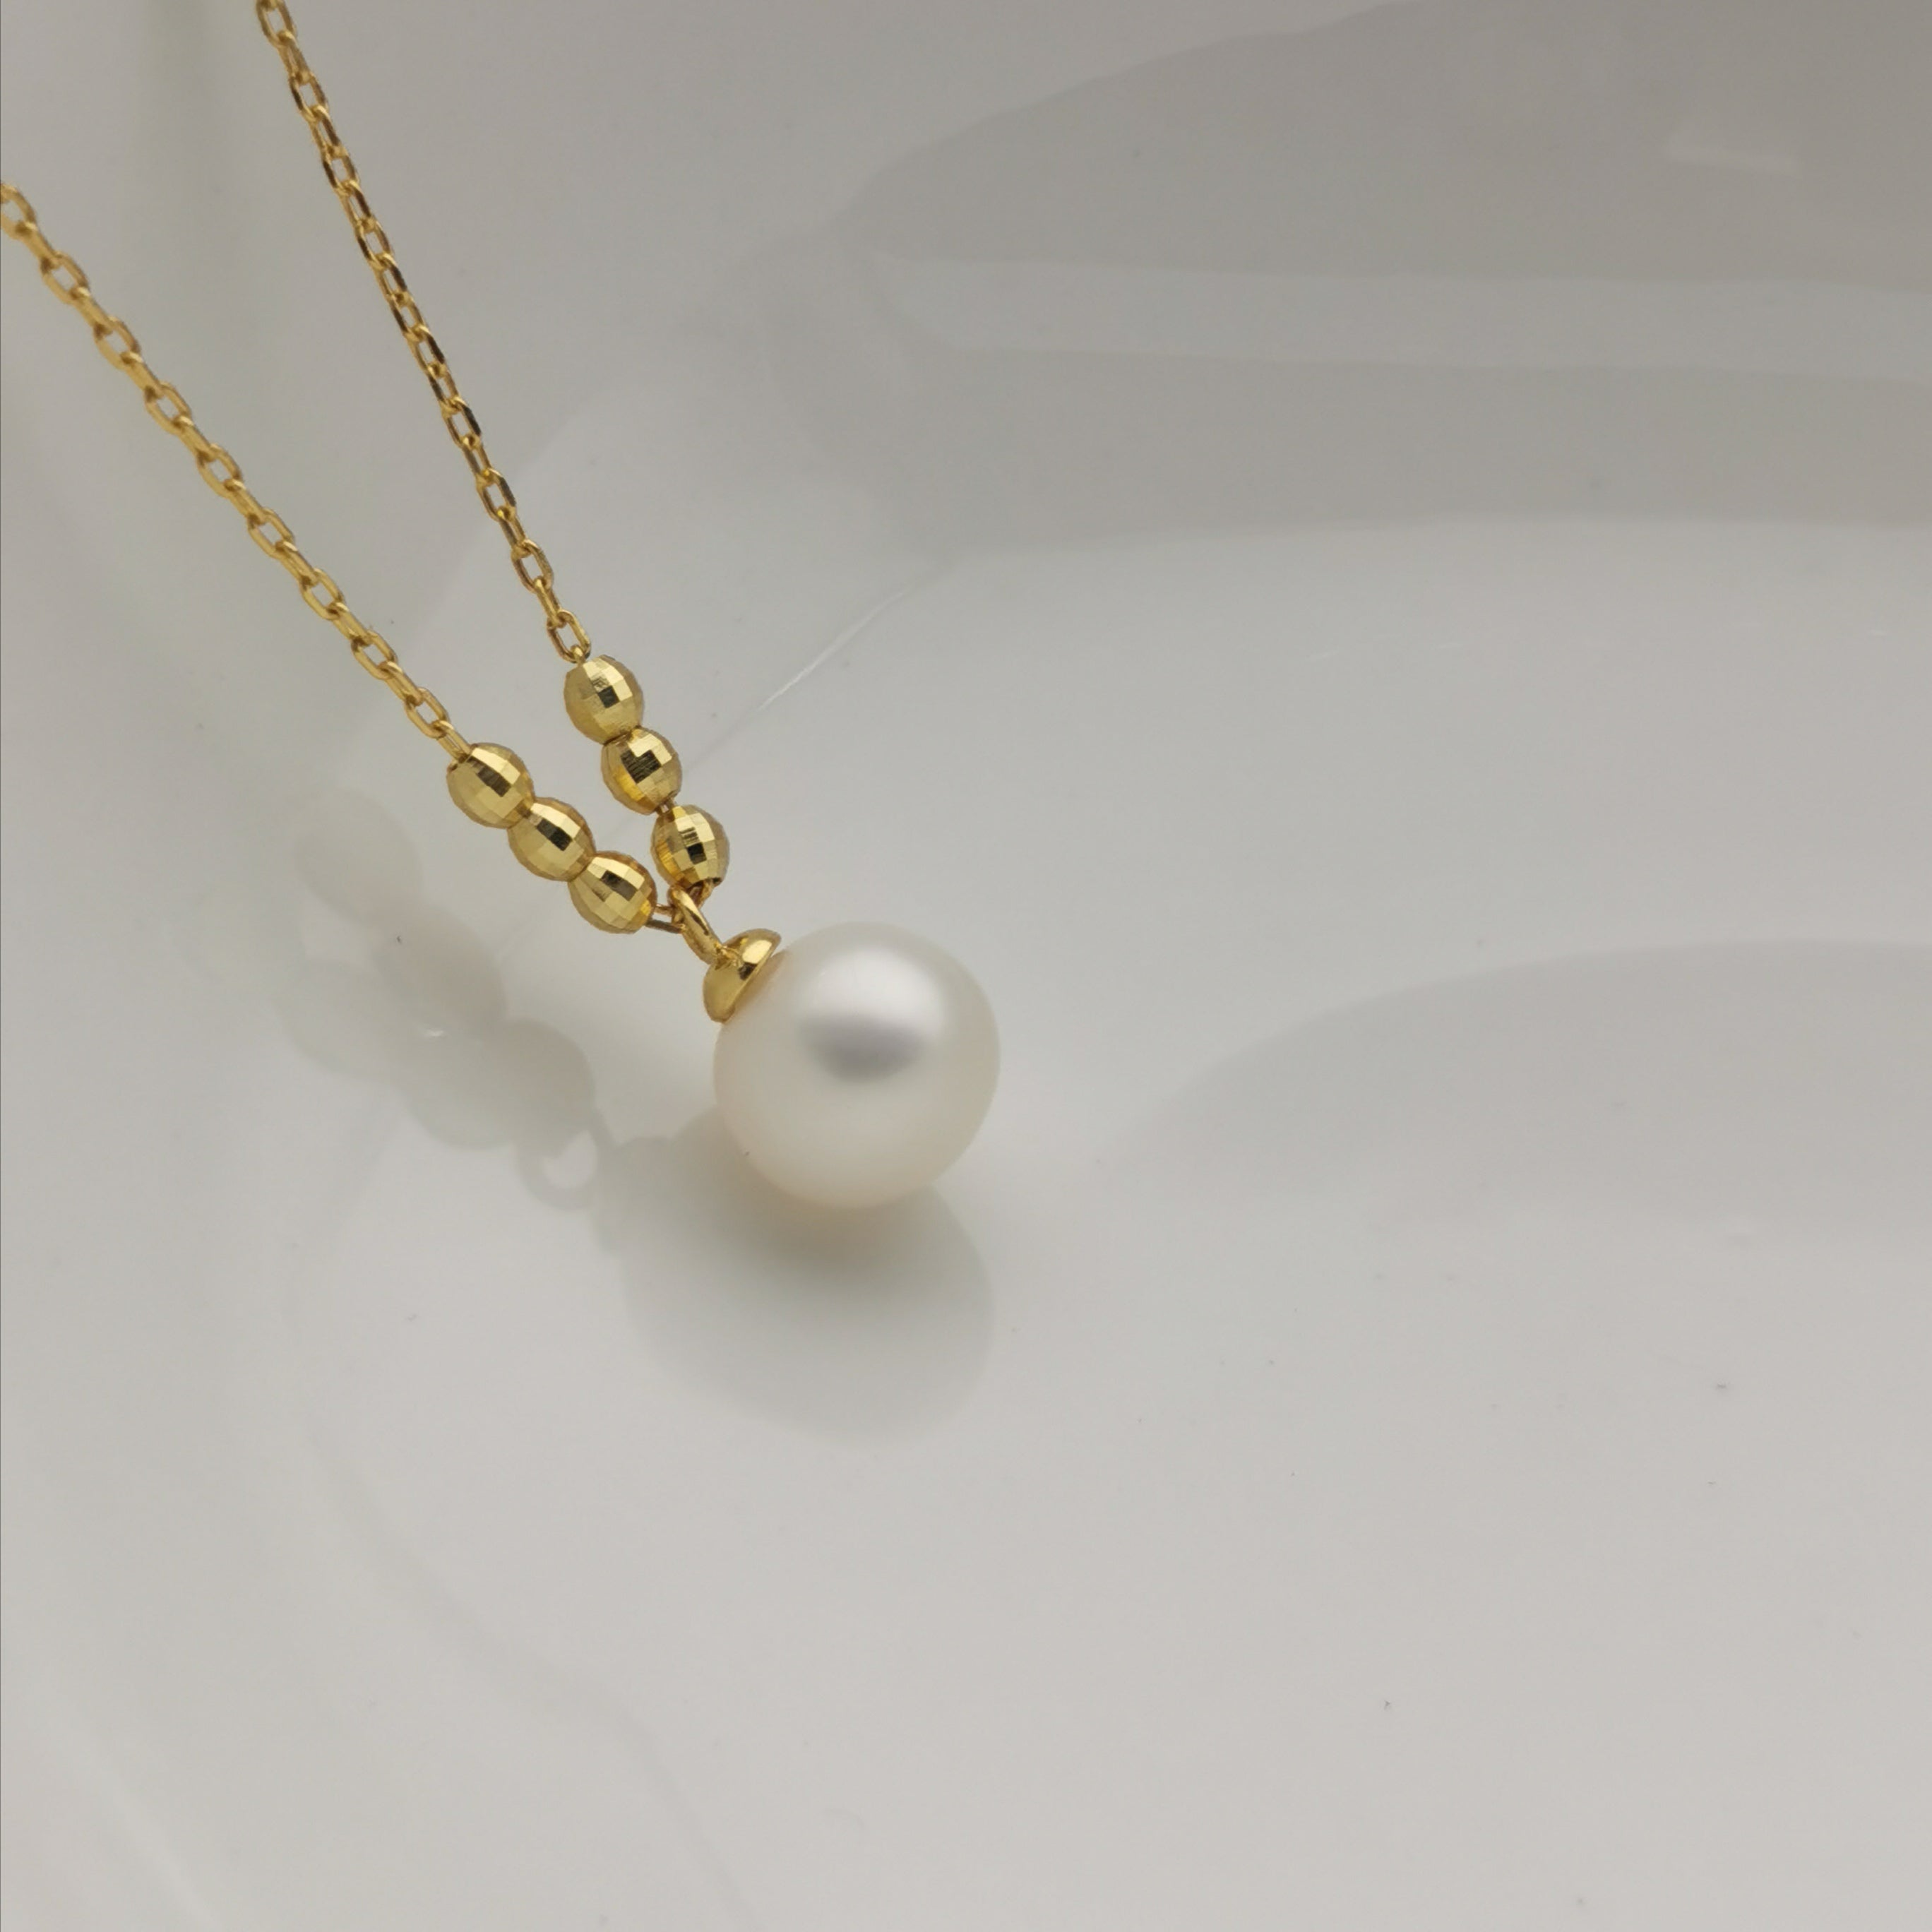 sterling silver Rodium plated freshwater pearl necklace